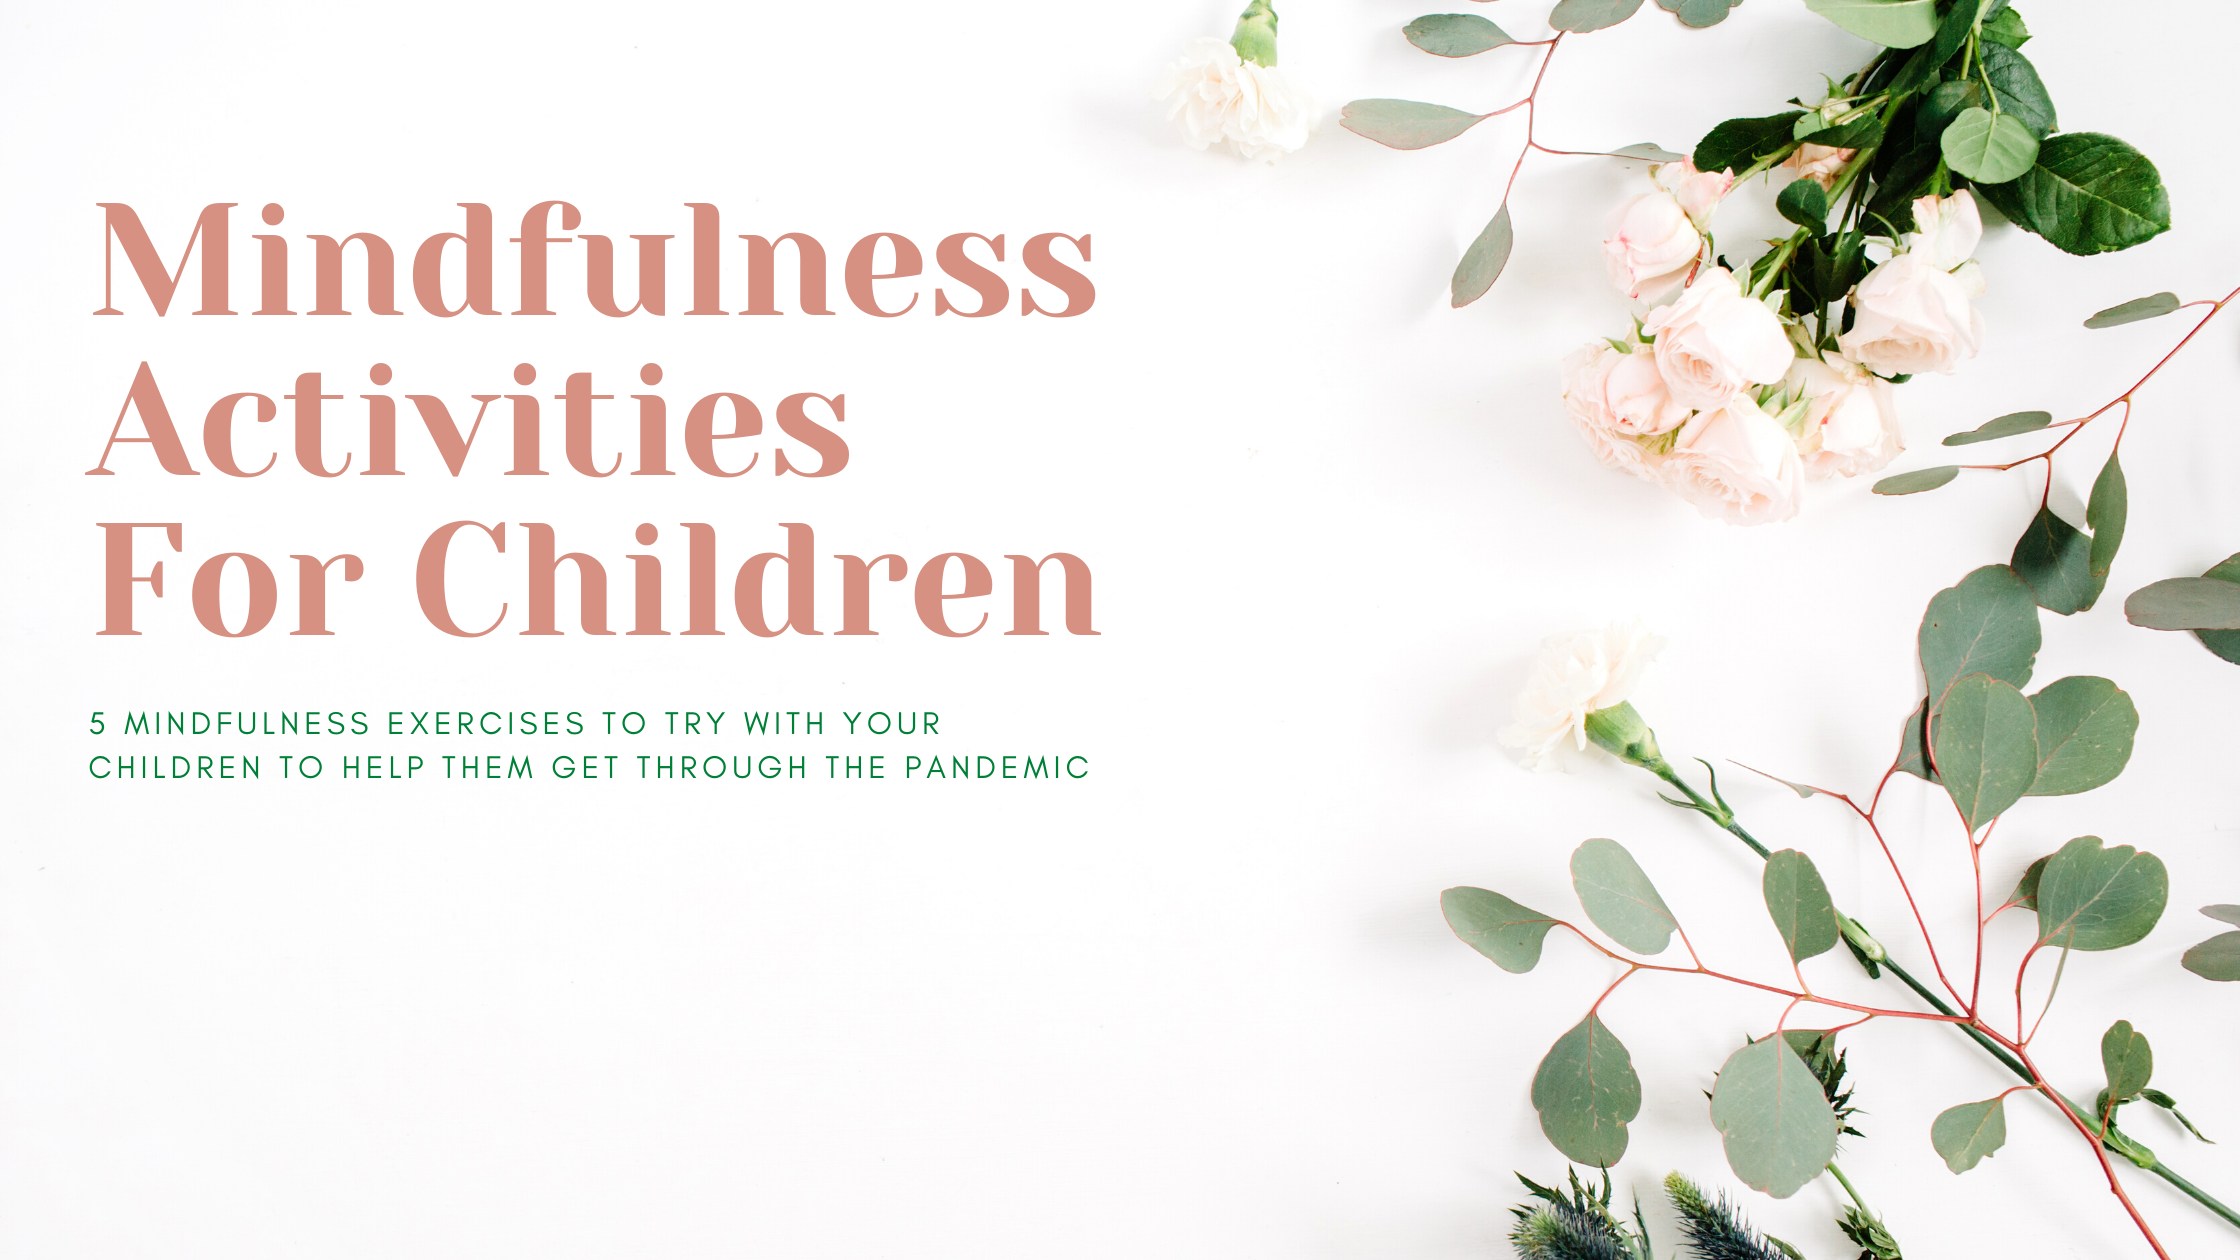 Text reading 'Mindfulness Activities For Children. 5 mindfulness exercises to try with your children to help them get through the pandemic' on a flora background